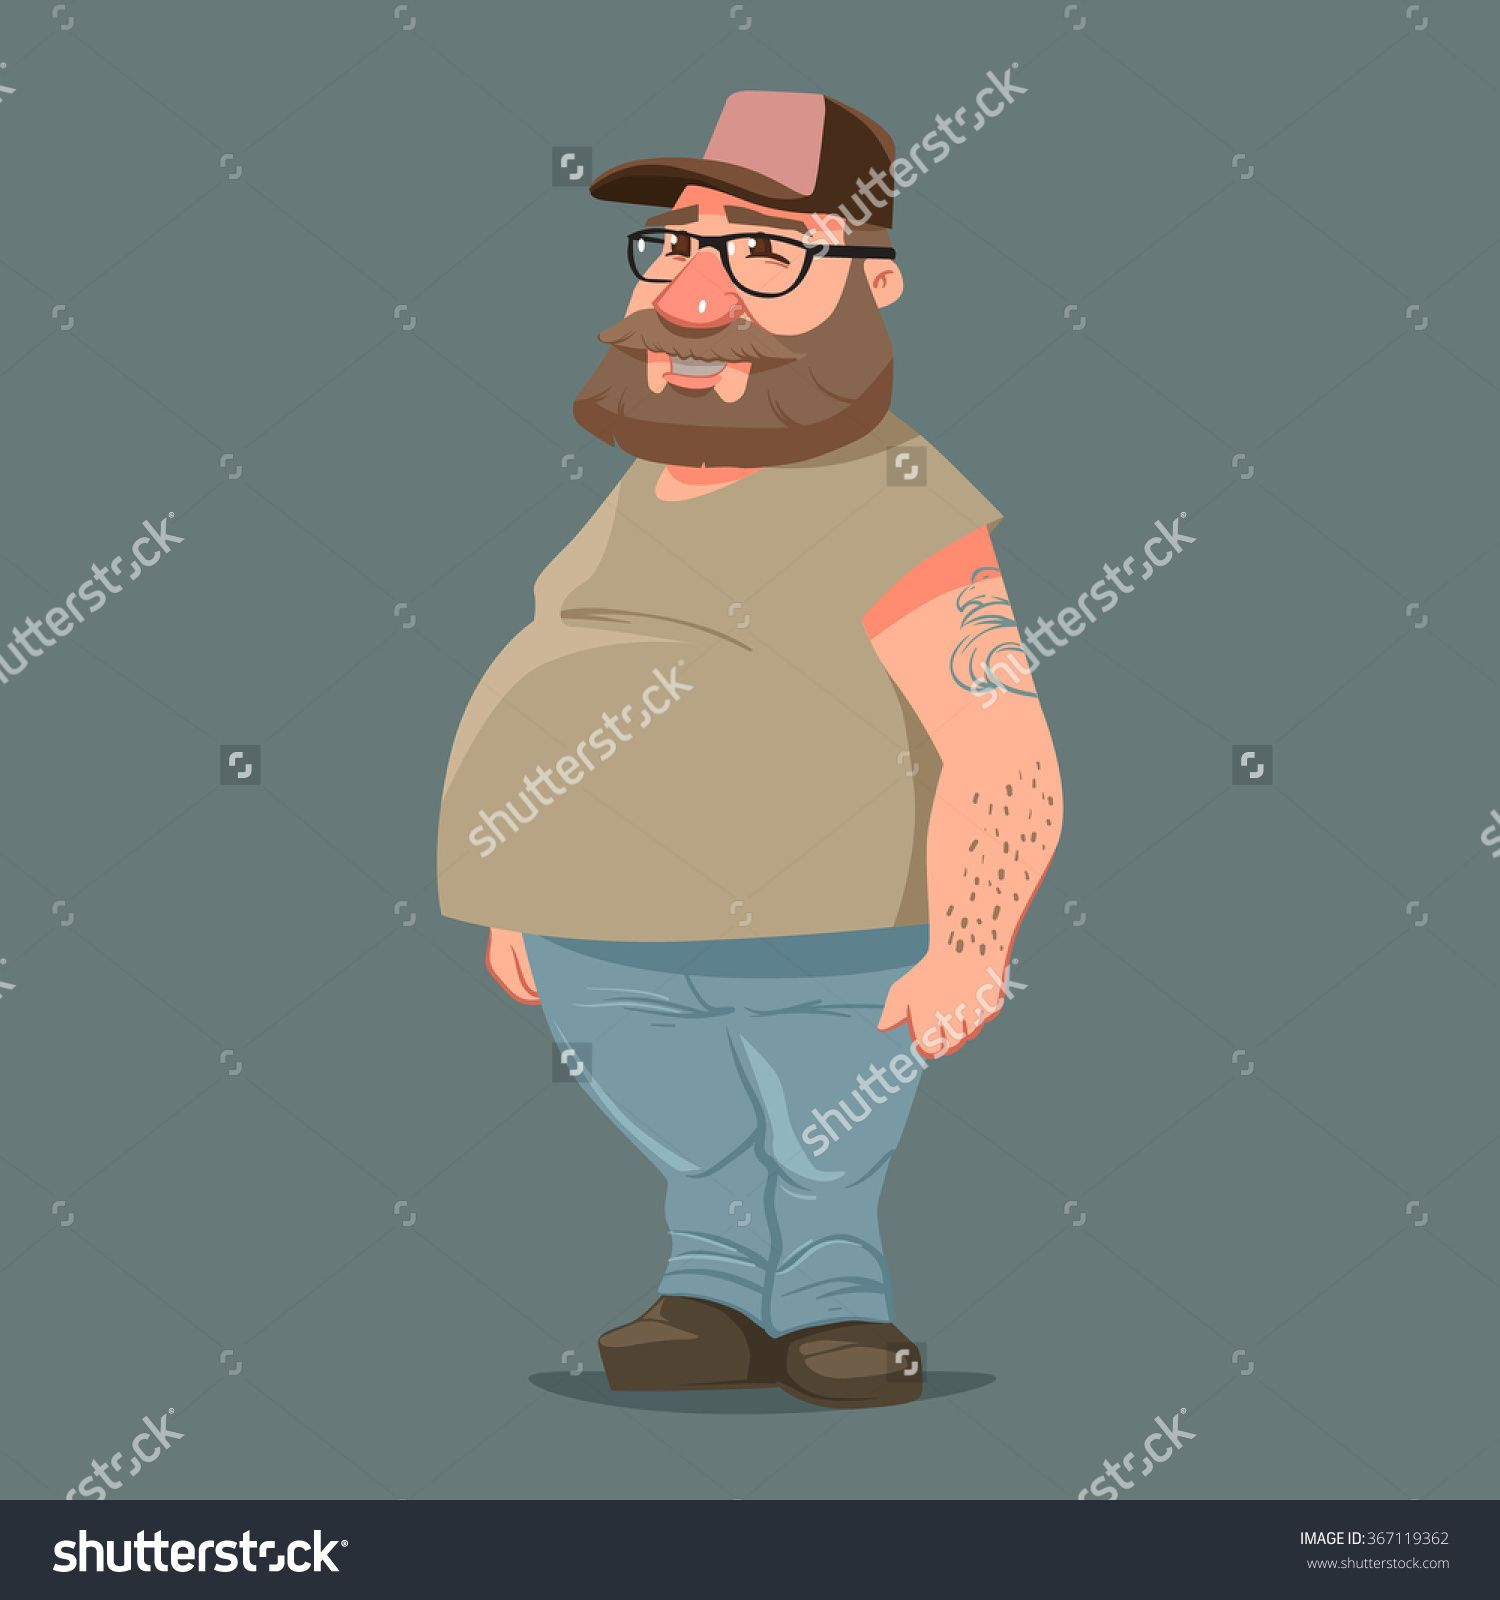 fa822ab0 Funny Cartoon Character, Truck Driver With Beard In Trucker Cap, Vector  Color Illustration - 367119362 : Shutterstock